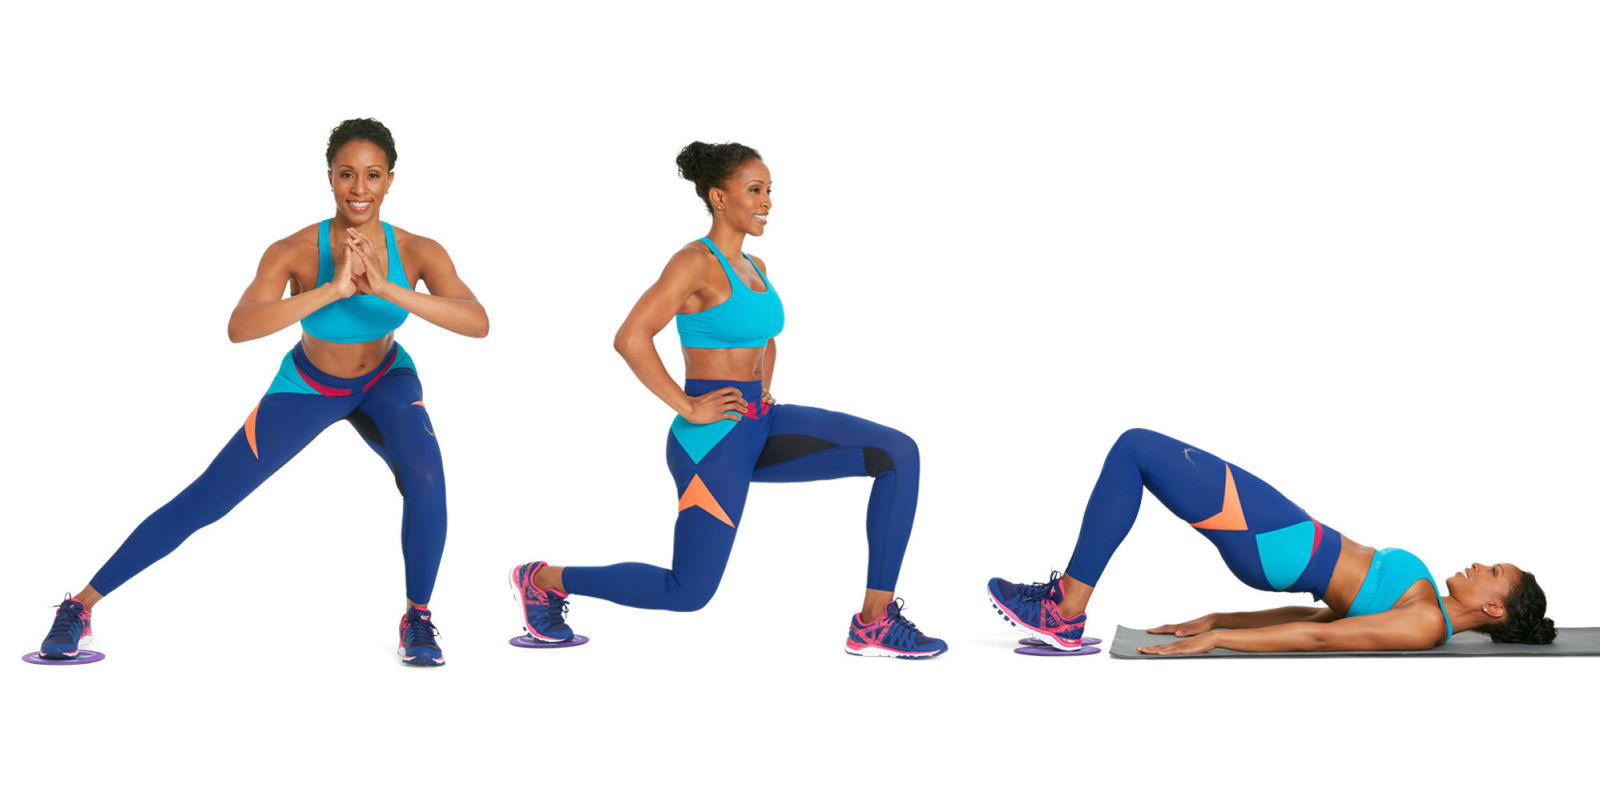 Glide Your Way To Leaner Legs With These 3 Moves 3